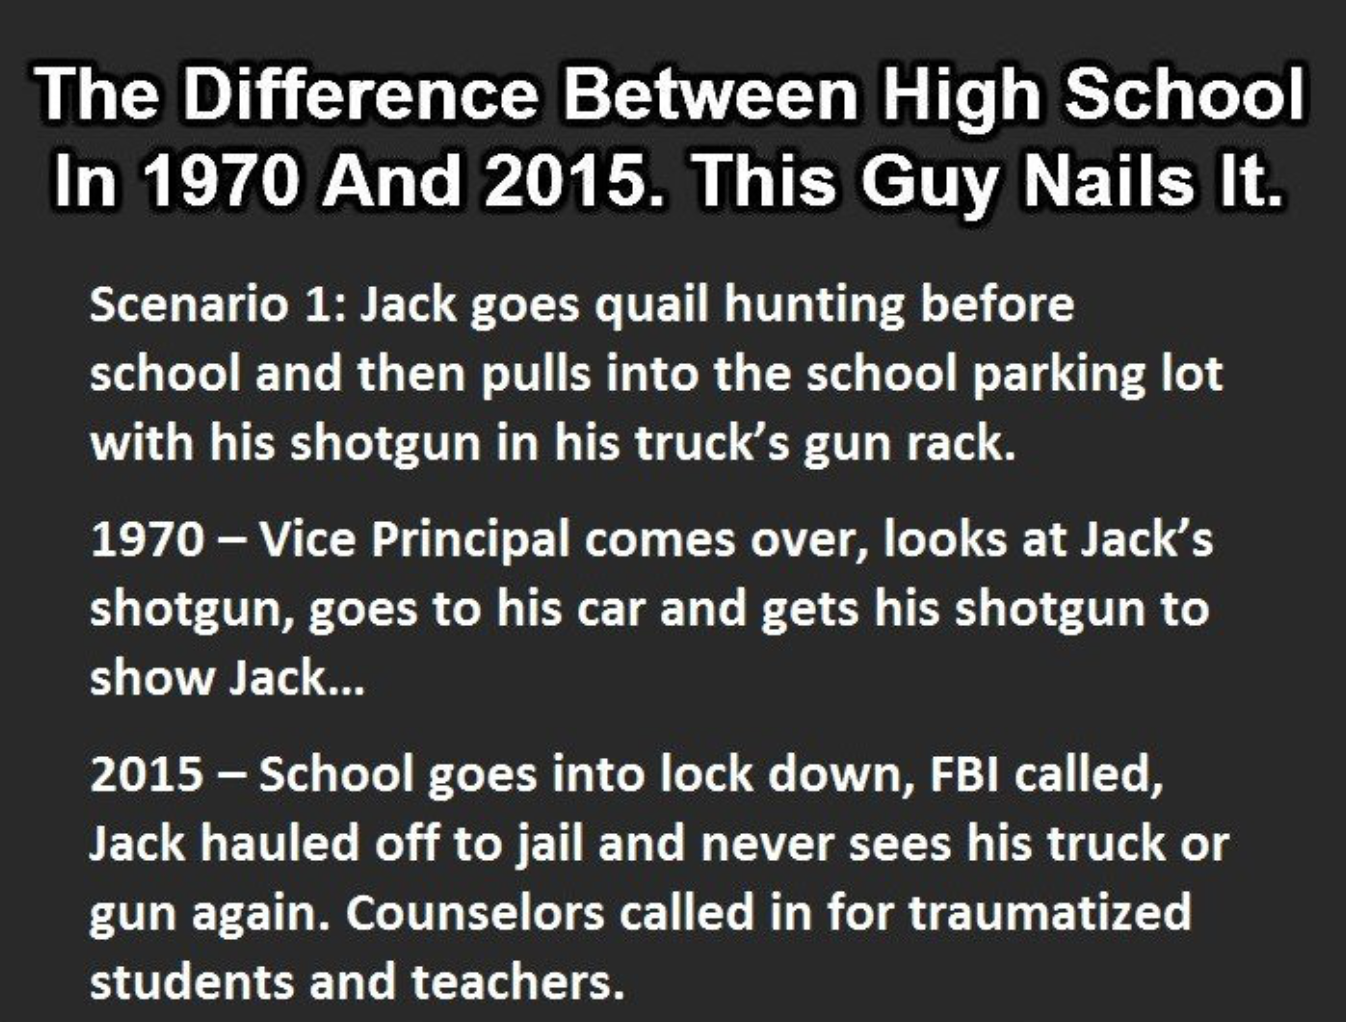 High School In 1970 Vs 2015. This Is So Accurate It Hurts.